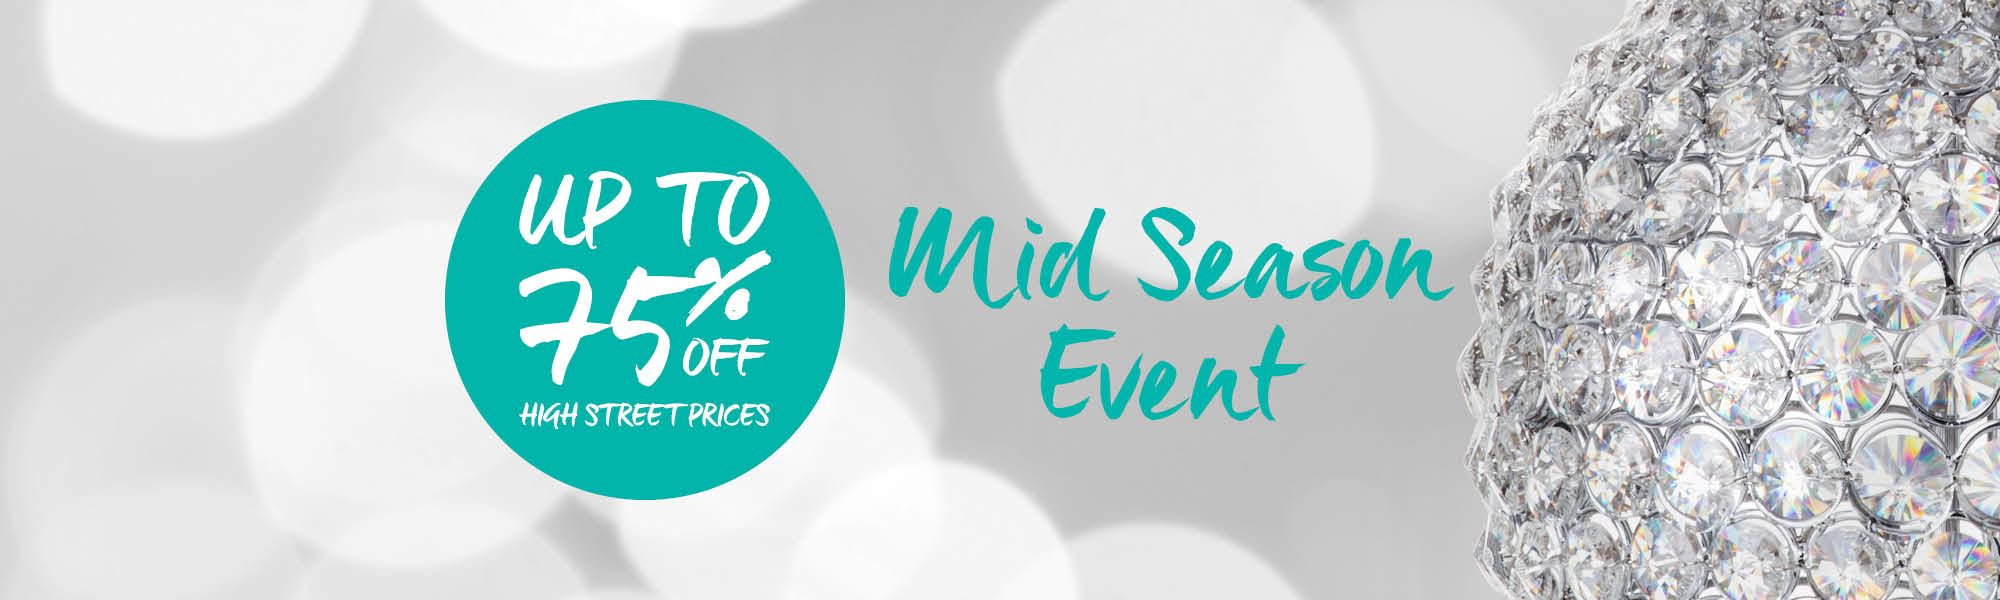 Mid Season Event - Save up to 75%